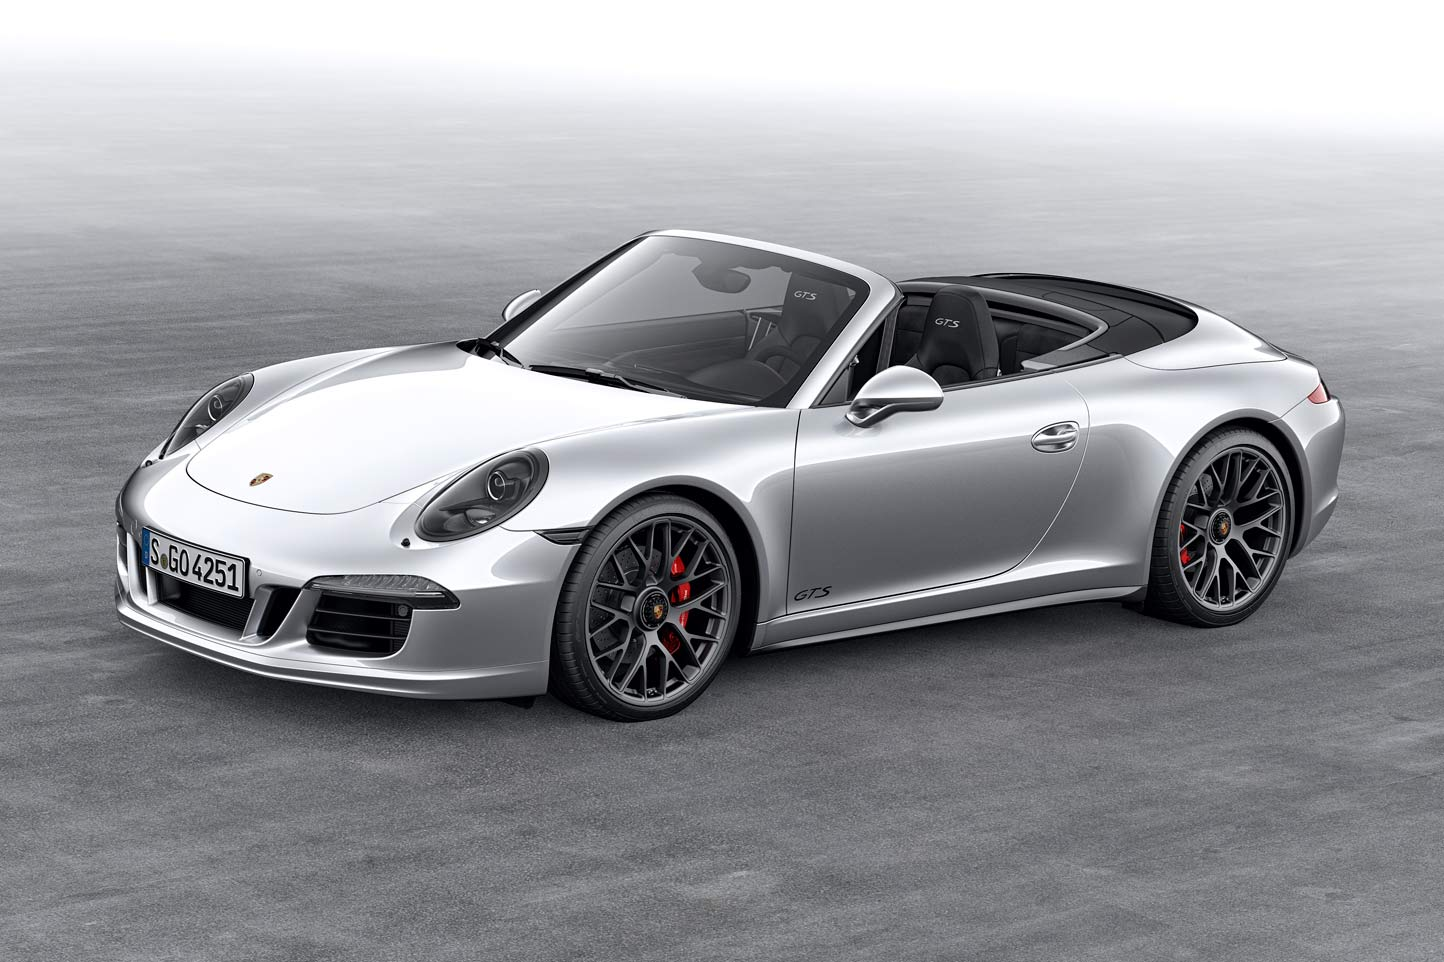 2019 porsche 911 carrera gts cabriolet car photos catalog 2018. Black Bedroom Furniture Sets. Home Design Ideas